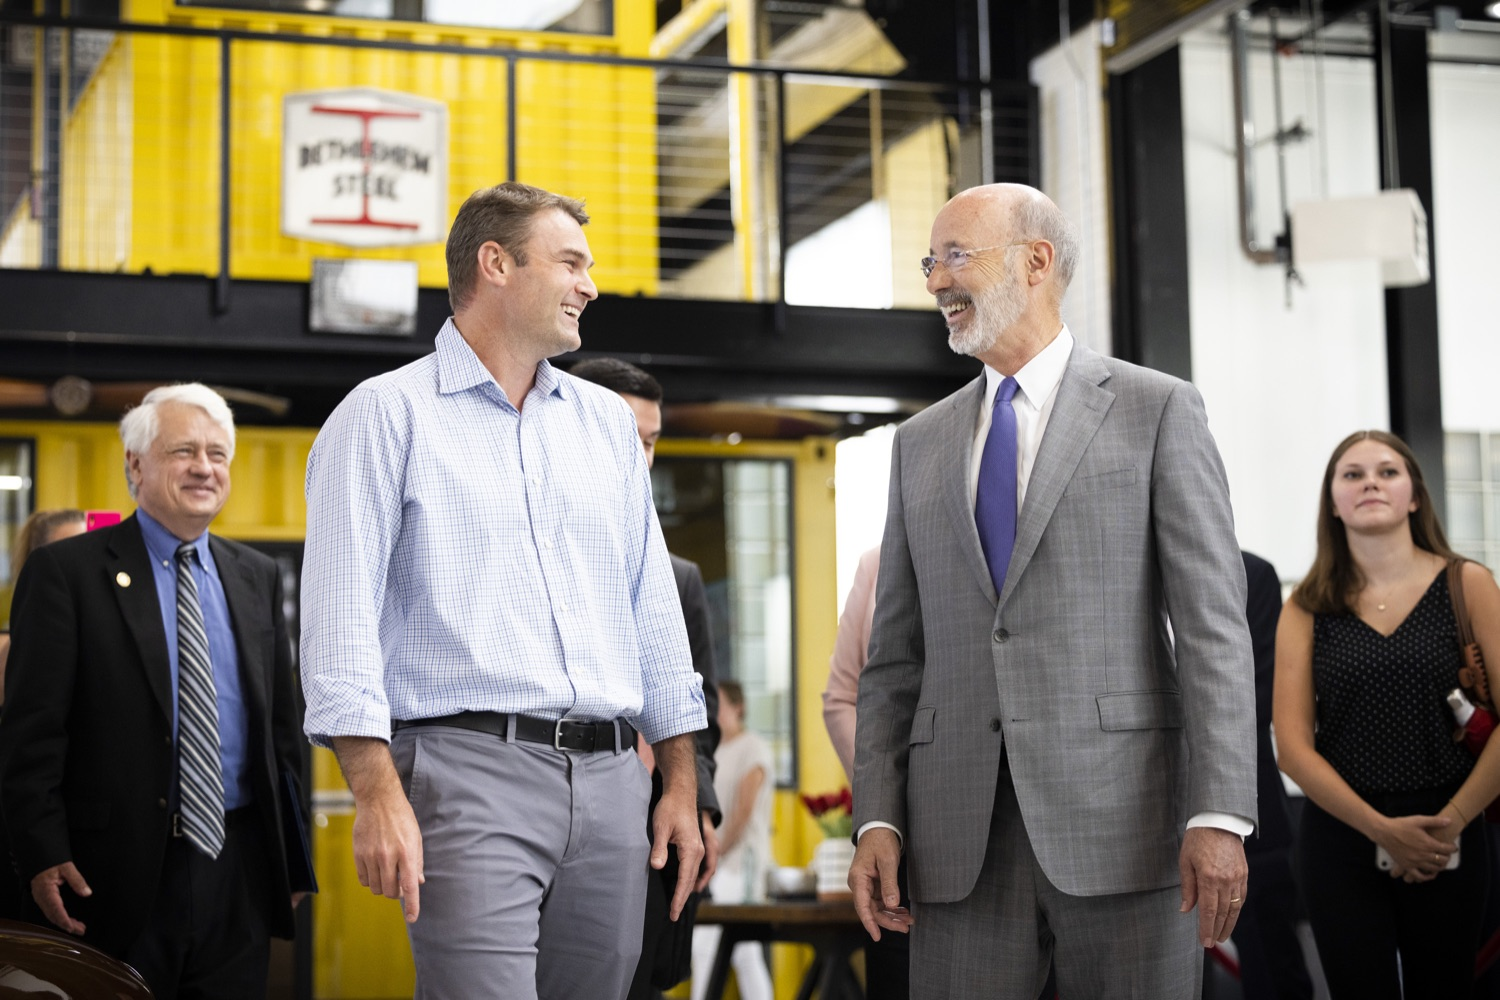 """<a href=""""https://filesource.wostreaming.net/commonwealthofpa/photo/18941_gov_economicDevelopment_dz_008.jpg"""" target=""""_blank"""">⇣Download Photo<br></a>Keith Caldwell, Partner  Factory LLC giving Pennsylvania Governor Tom Wolf a tour of Factory LLC.  Governor Tom Wolf today visited Factory LLC in Bethlehem to tour the facility and highlight the importance of investing in Pennsylvanias start-up companies. During the visit, he met with companies affiliated with Factory, including Stuffed Puffs®, which received a $1 million funding proposal from the commonwealth in 2019 to expand its manufacturing operations and create jobs, Mikeys®, Pipcorn®, Honey Stinger®, and ROAR® Organic. Bethlehem, PA  July 19, 2021"""